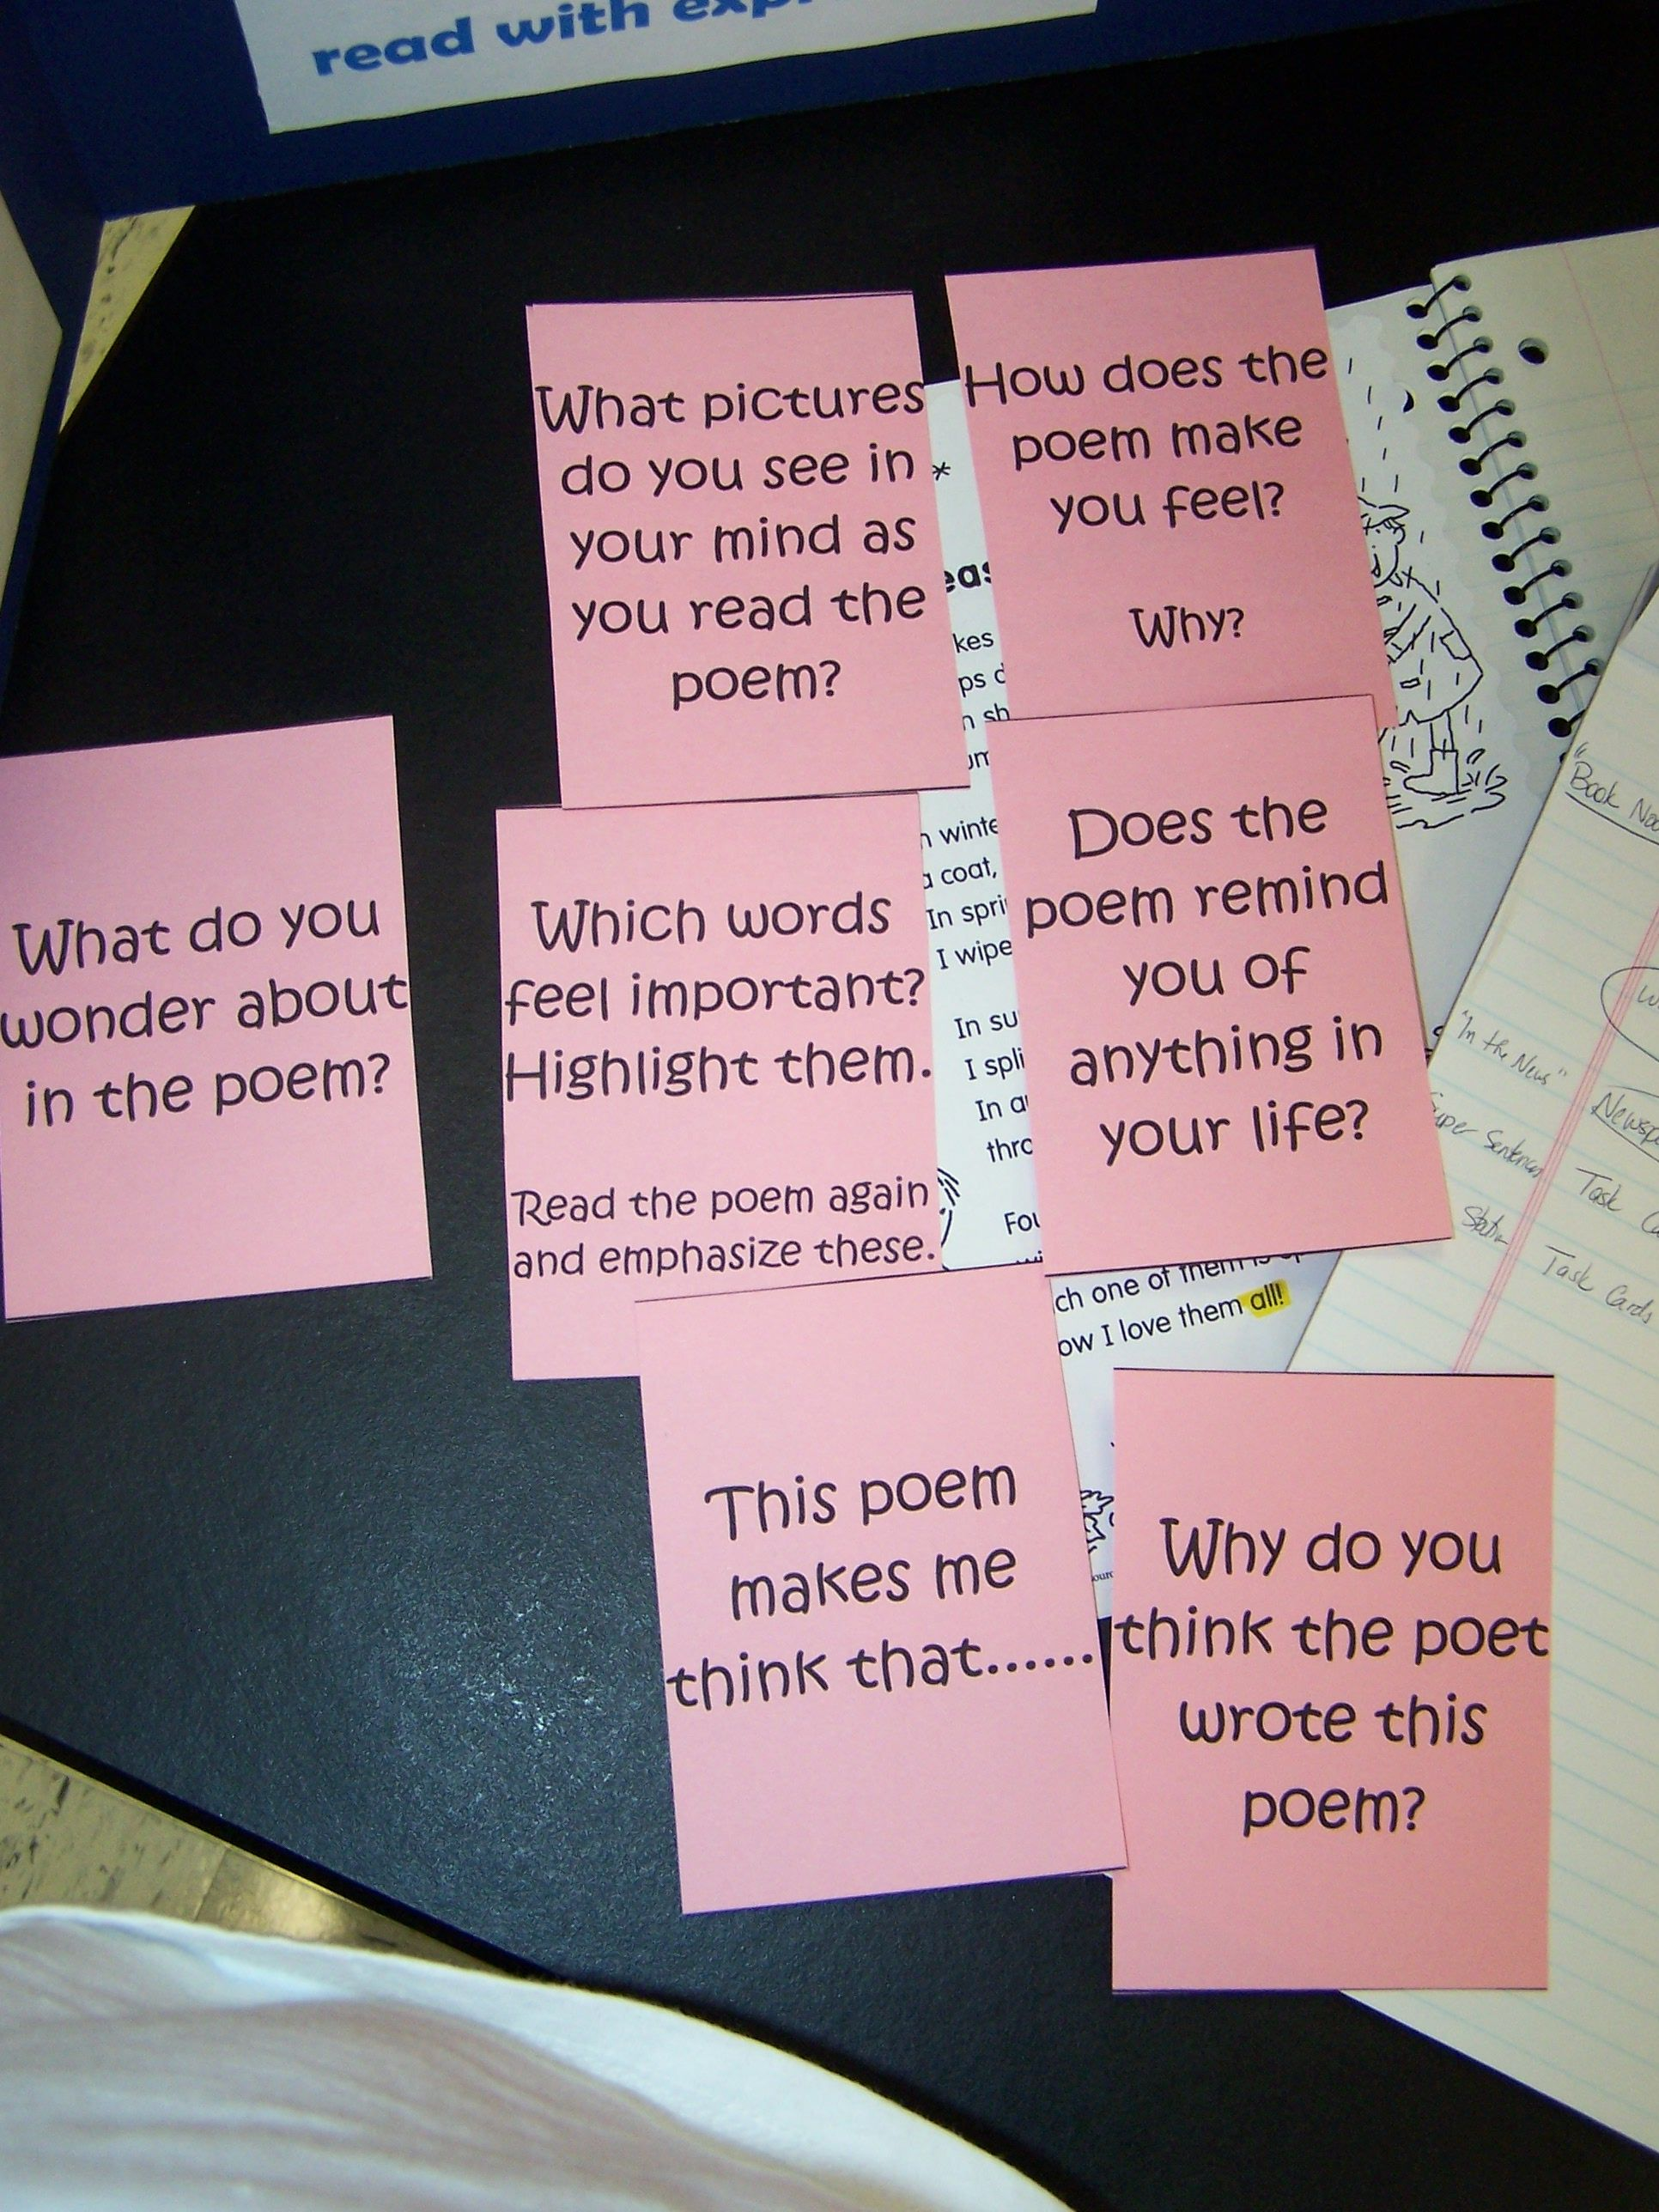 Poetry Response Prompts We Have A Fledgling Poetry Group At Our Library Always Seeking Ideas